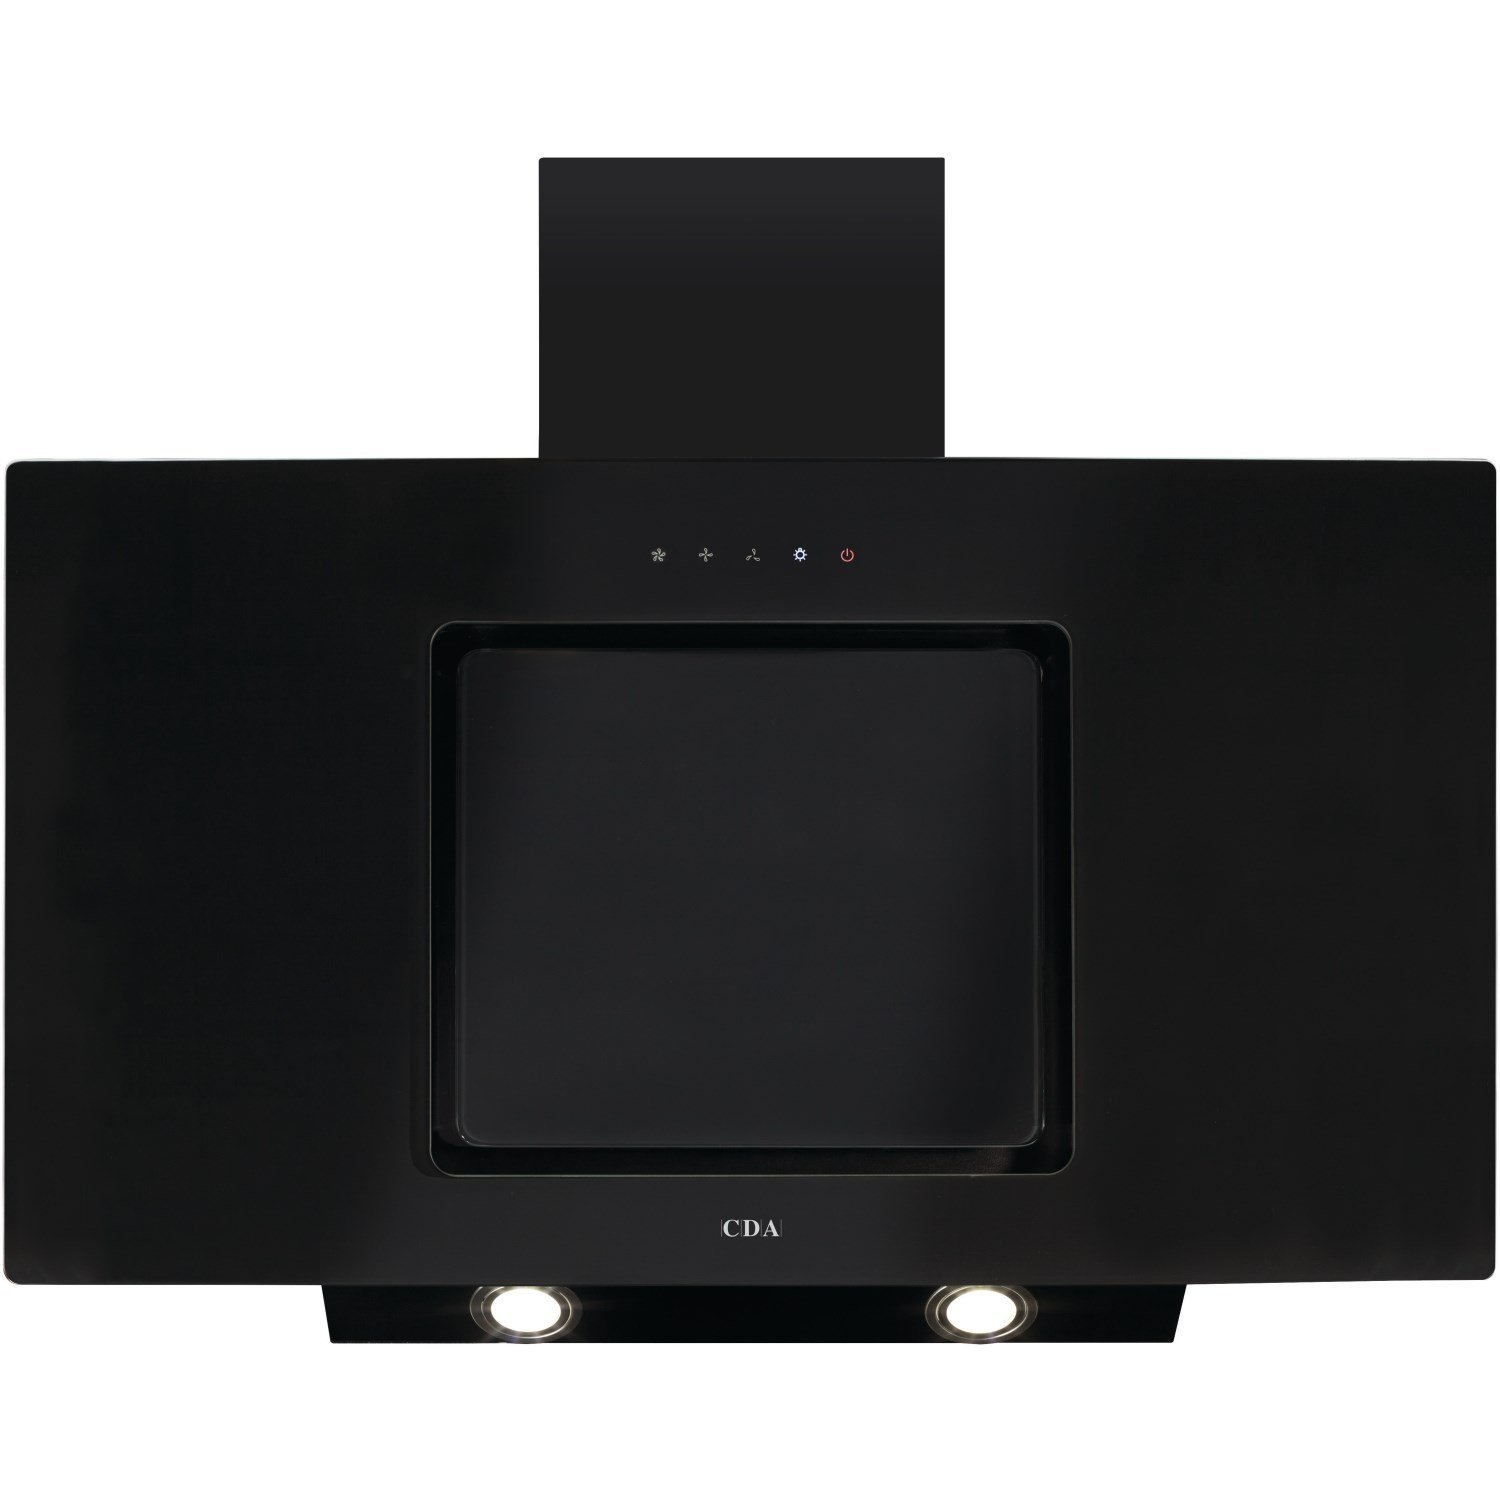 CDA EVA90BL Cooker Hood Chimney Extractor Angled 90cm Black